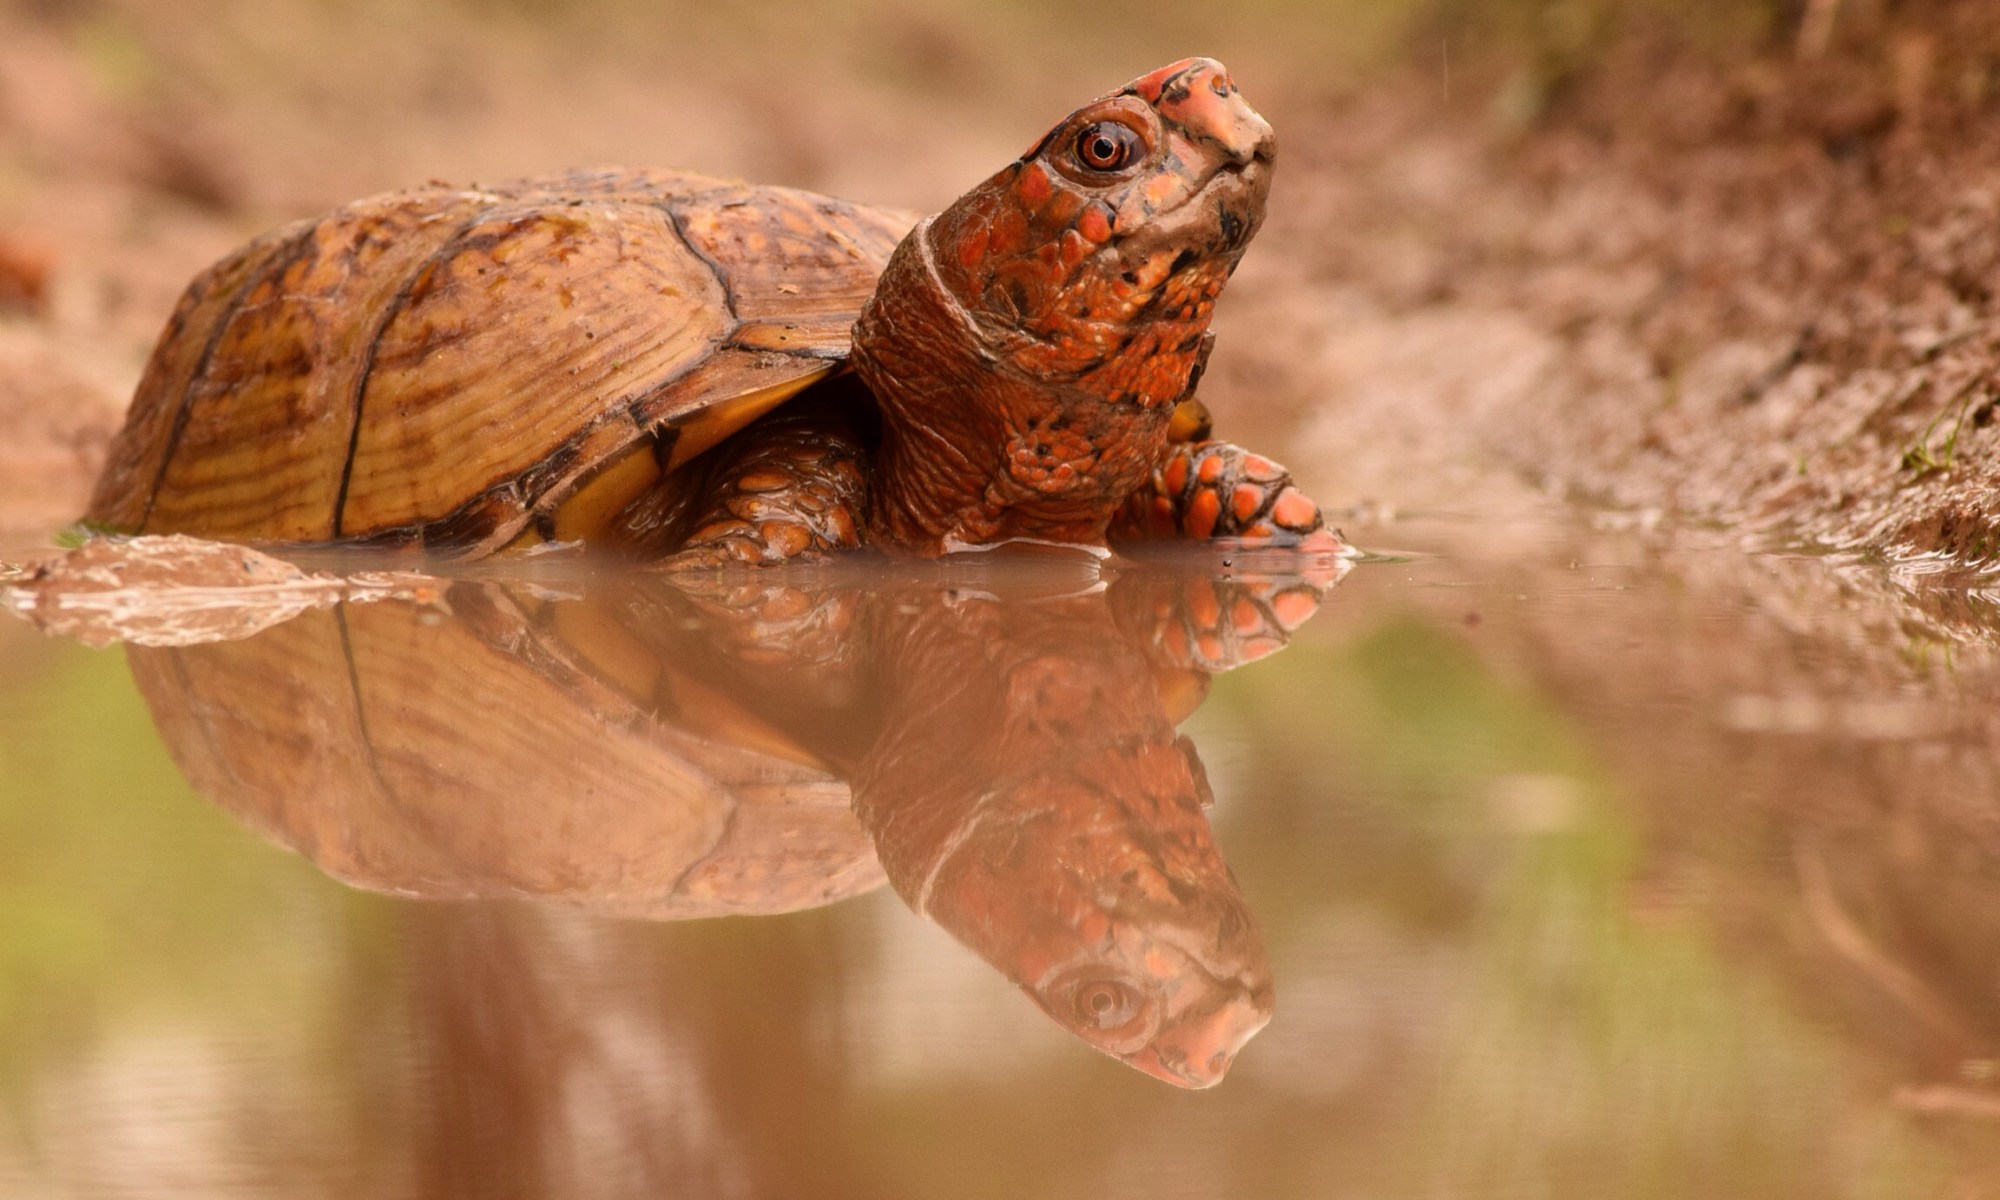 Three-toed Box Turtle photo by Justin Sokol